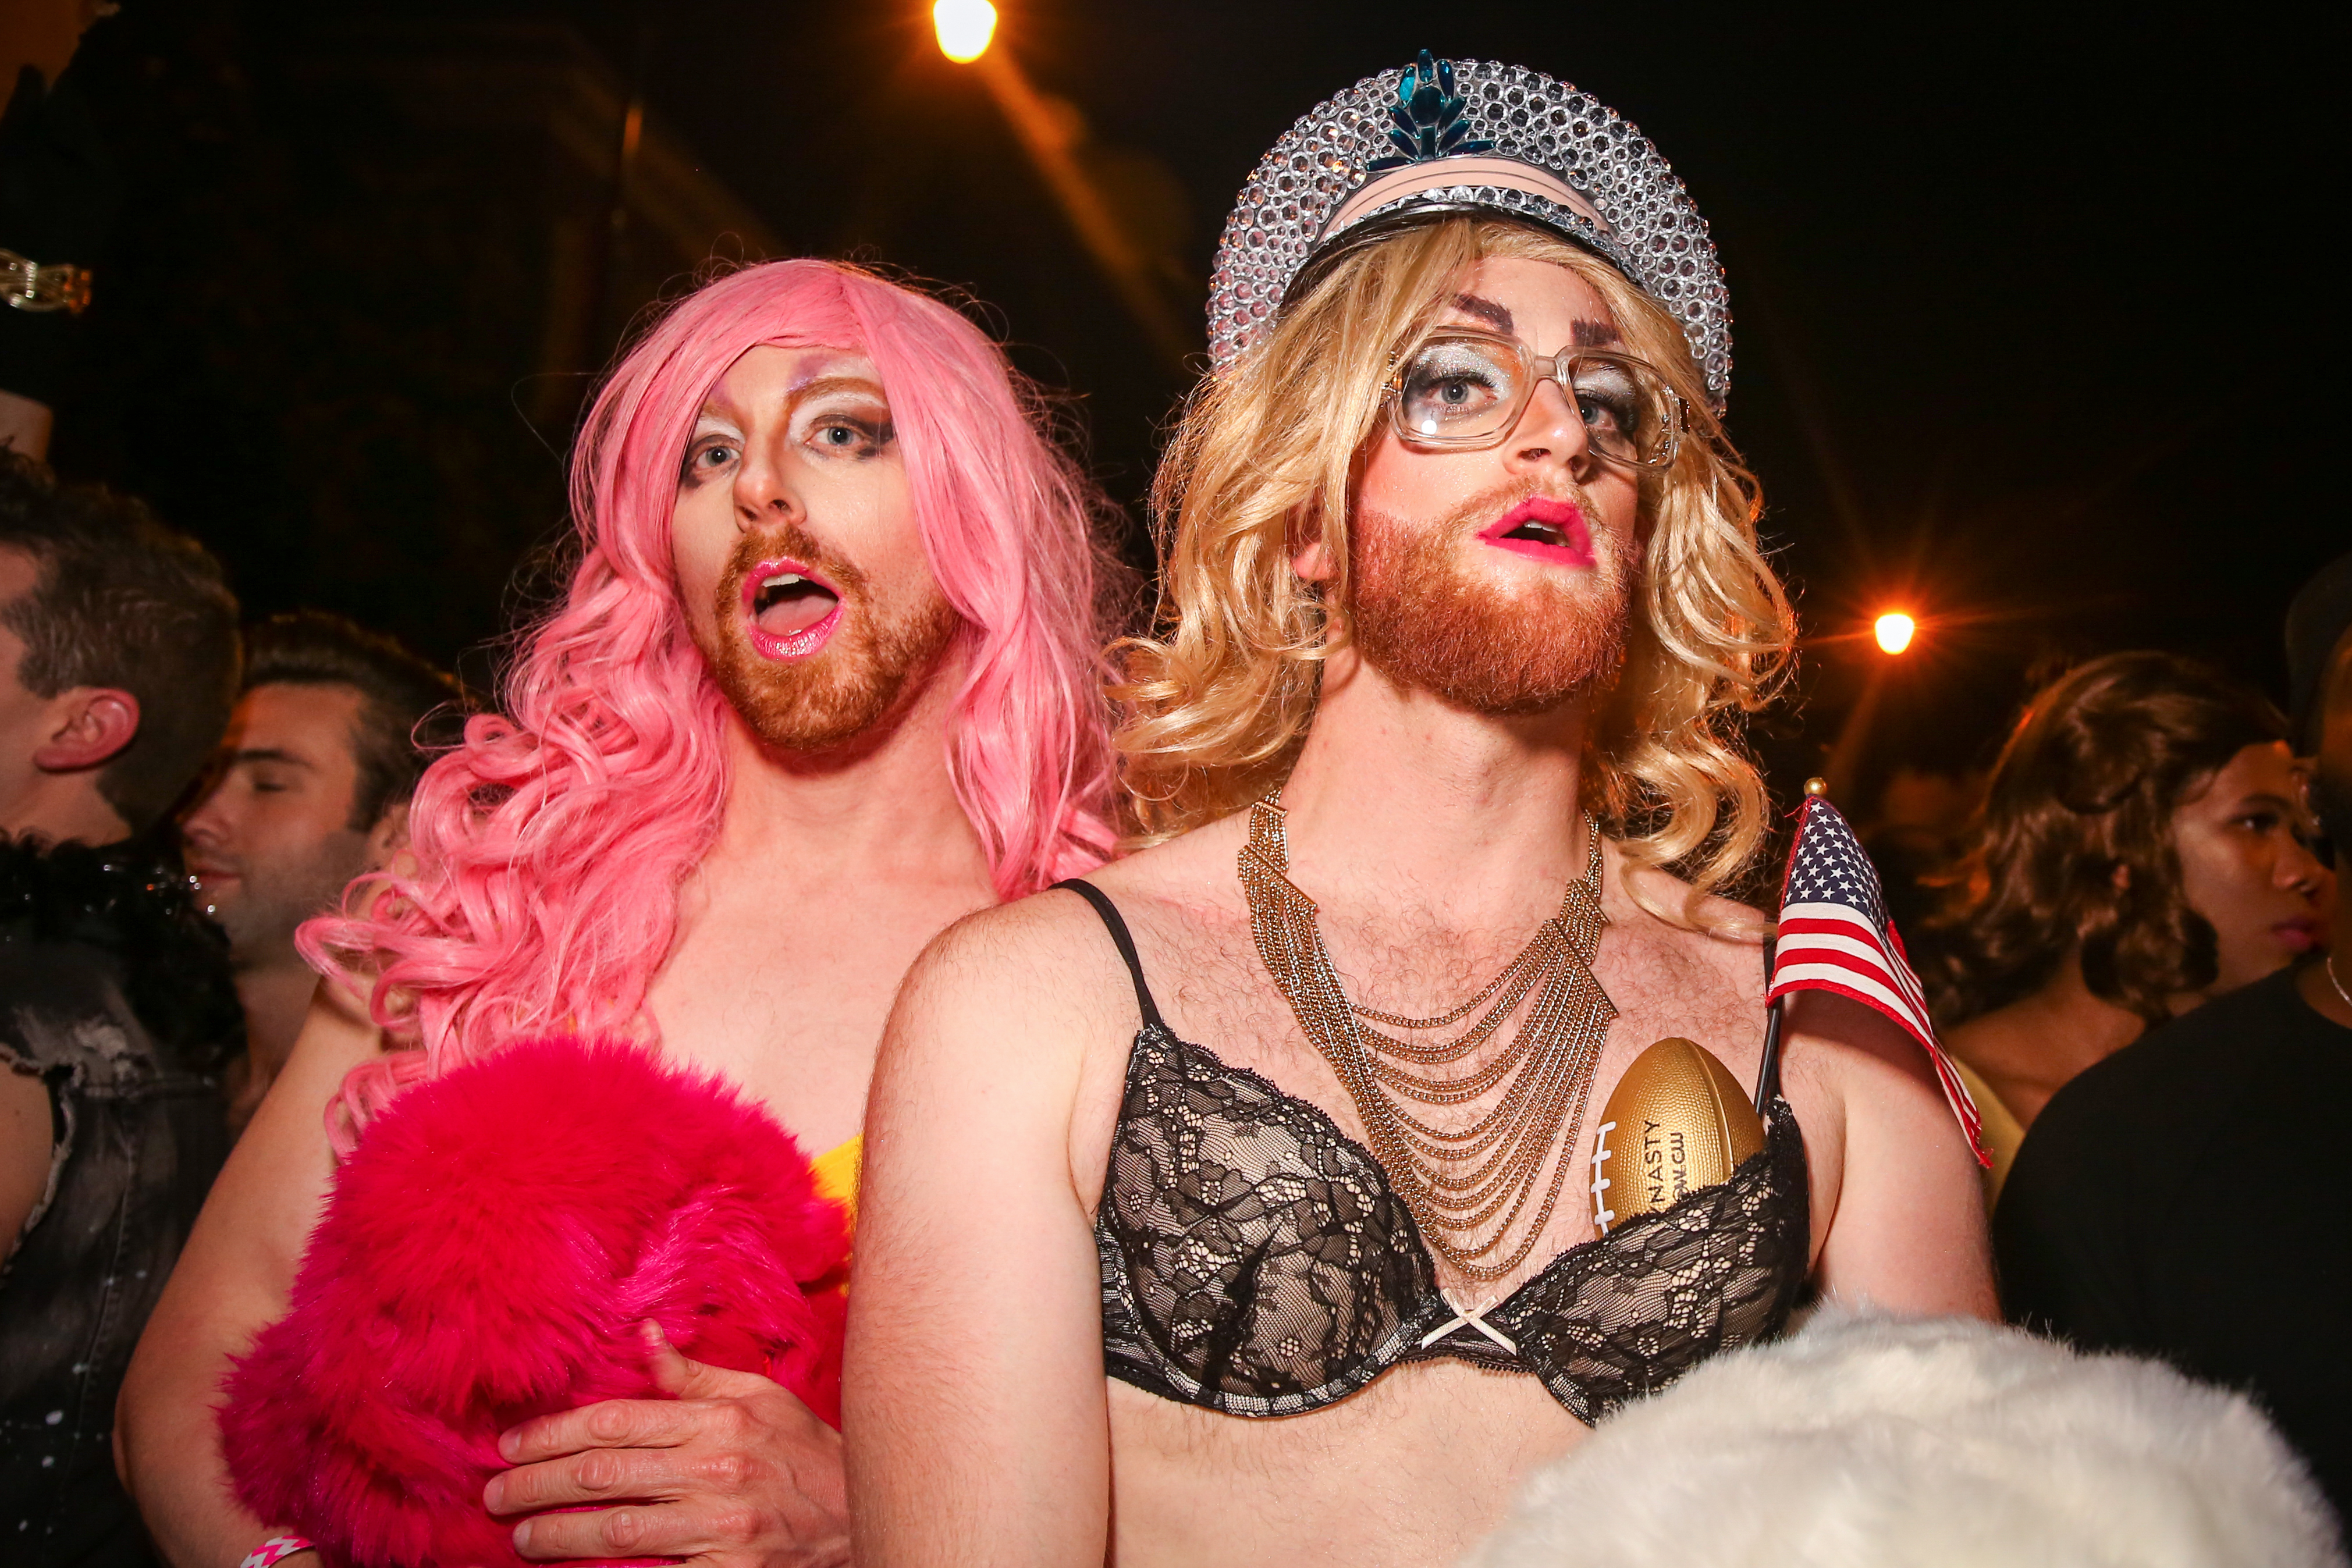 October, 2017. Competitors pose after the annual 17th Street High Heel Race.{&amp;nbsp;} (Amanda Andrade-Rhoades/DC Refined)<p></p>